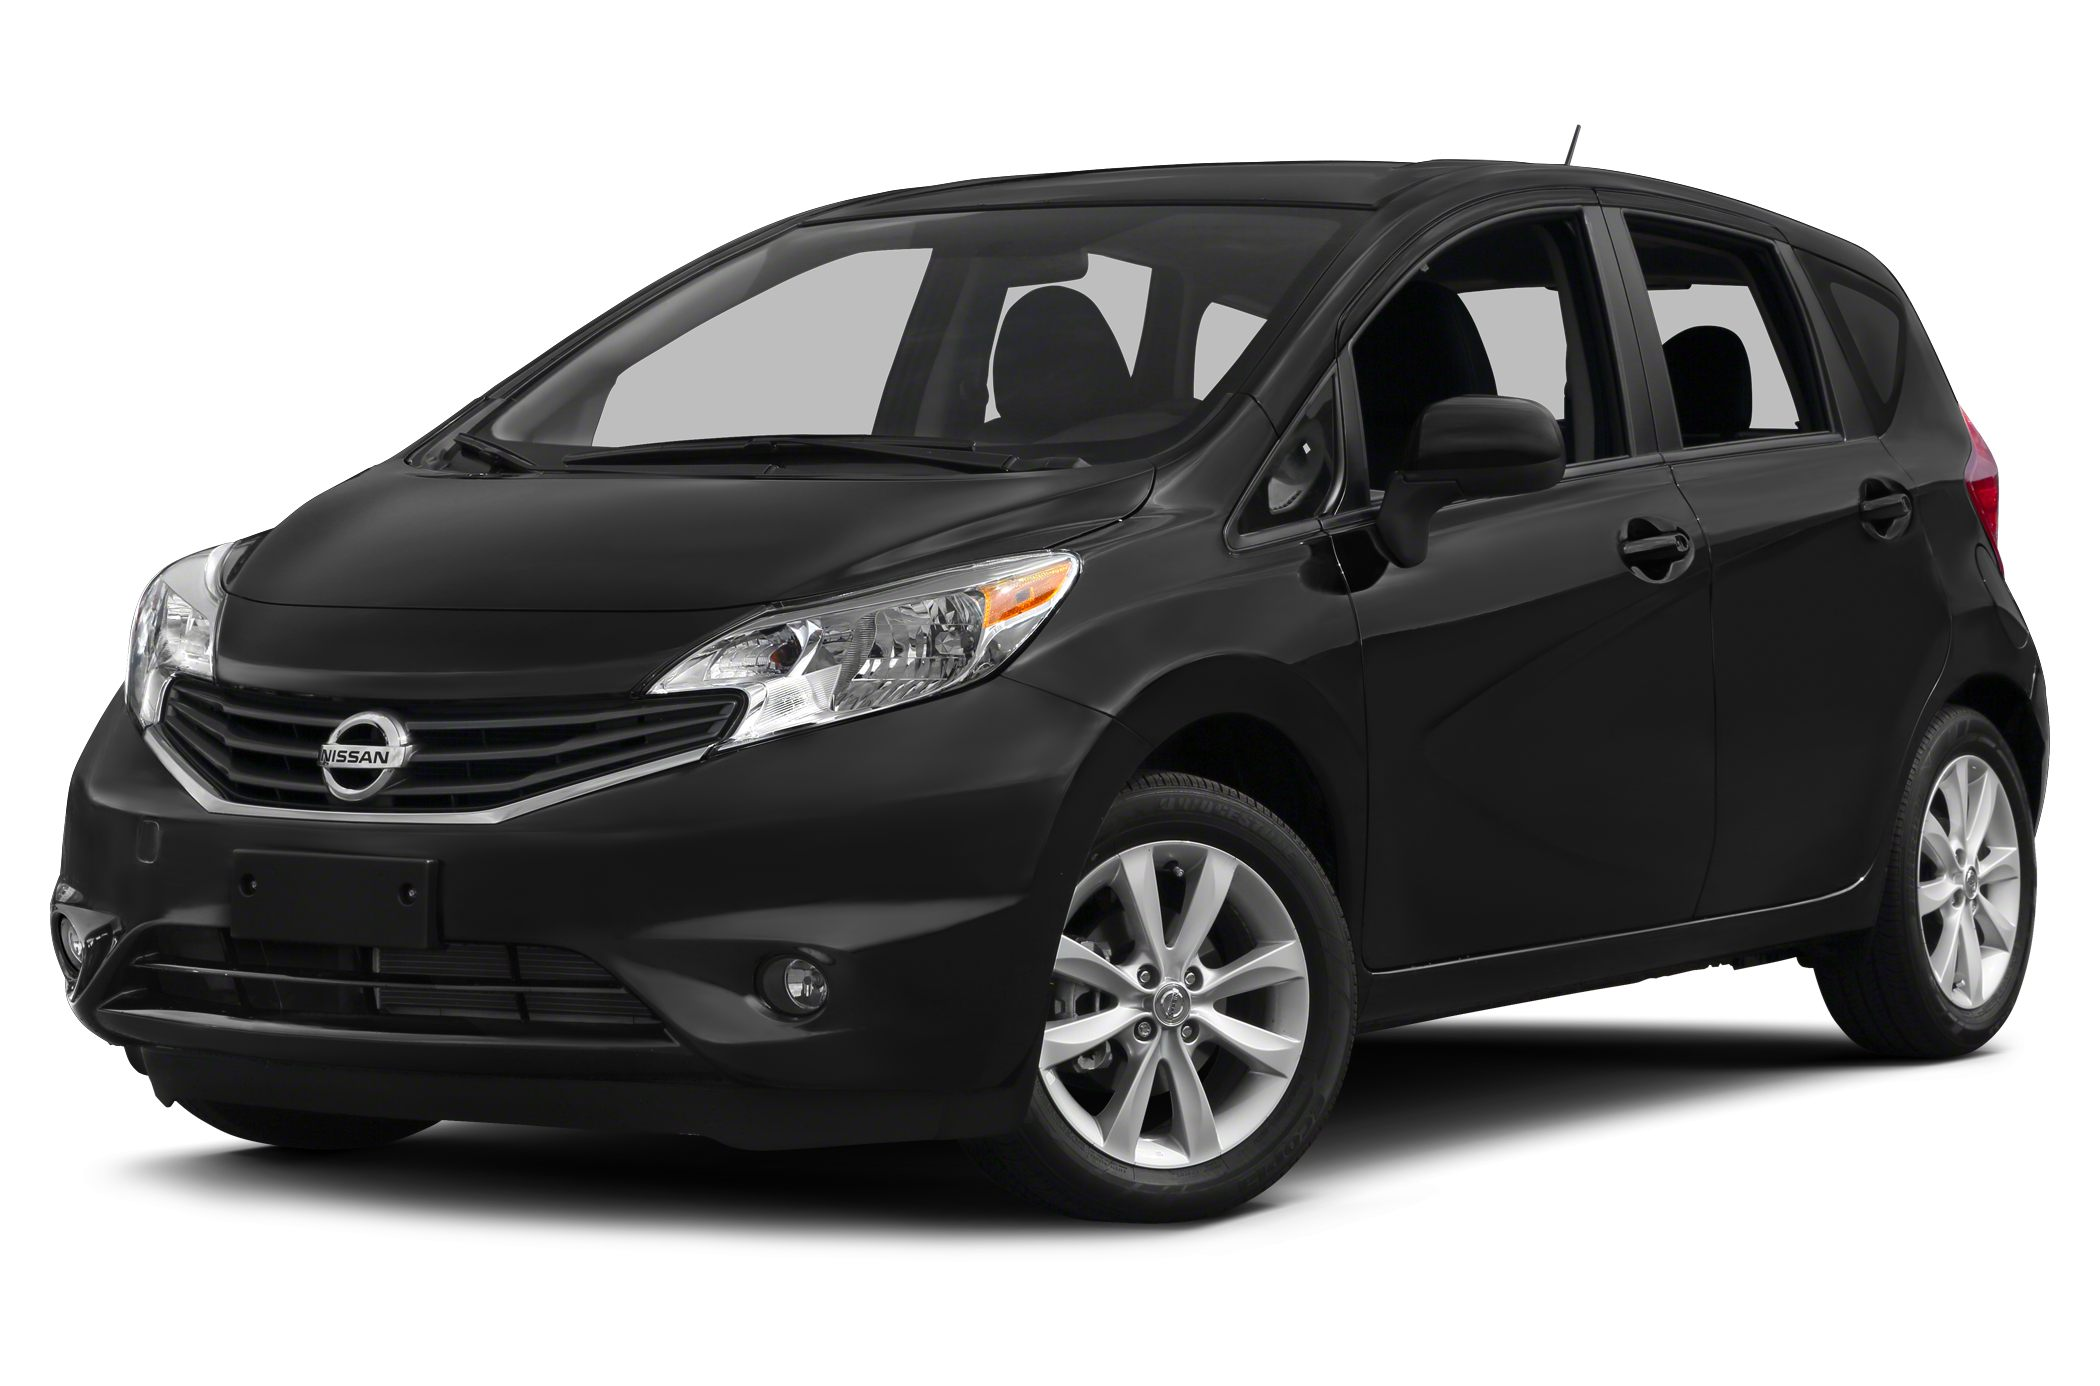 2015 Nissan Versa Note S Hatchback for sale in Cuyahoga Falls for $13,000 with 5 miles.